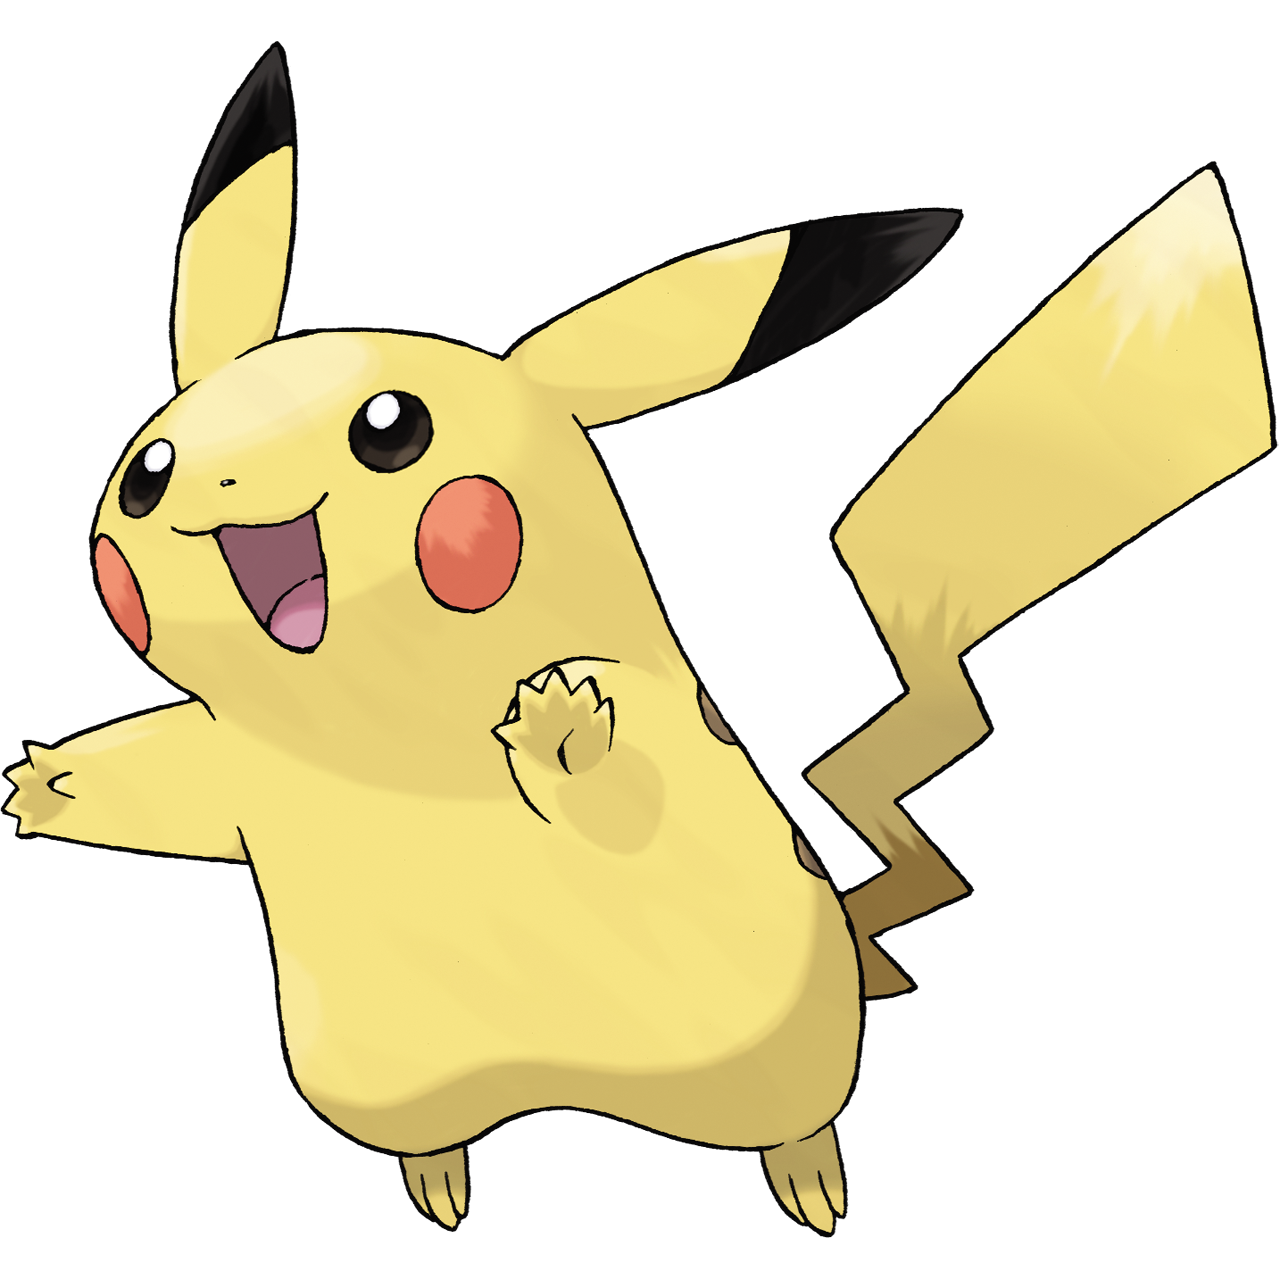 Pikachu Pokémon Wiki Fandom Powered By Wikia